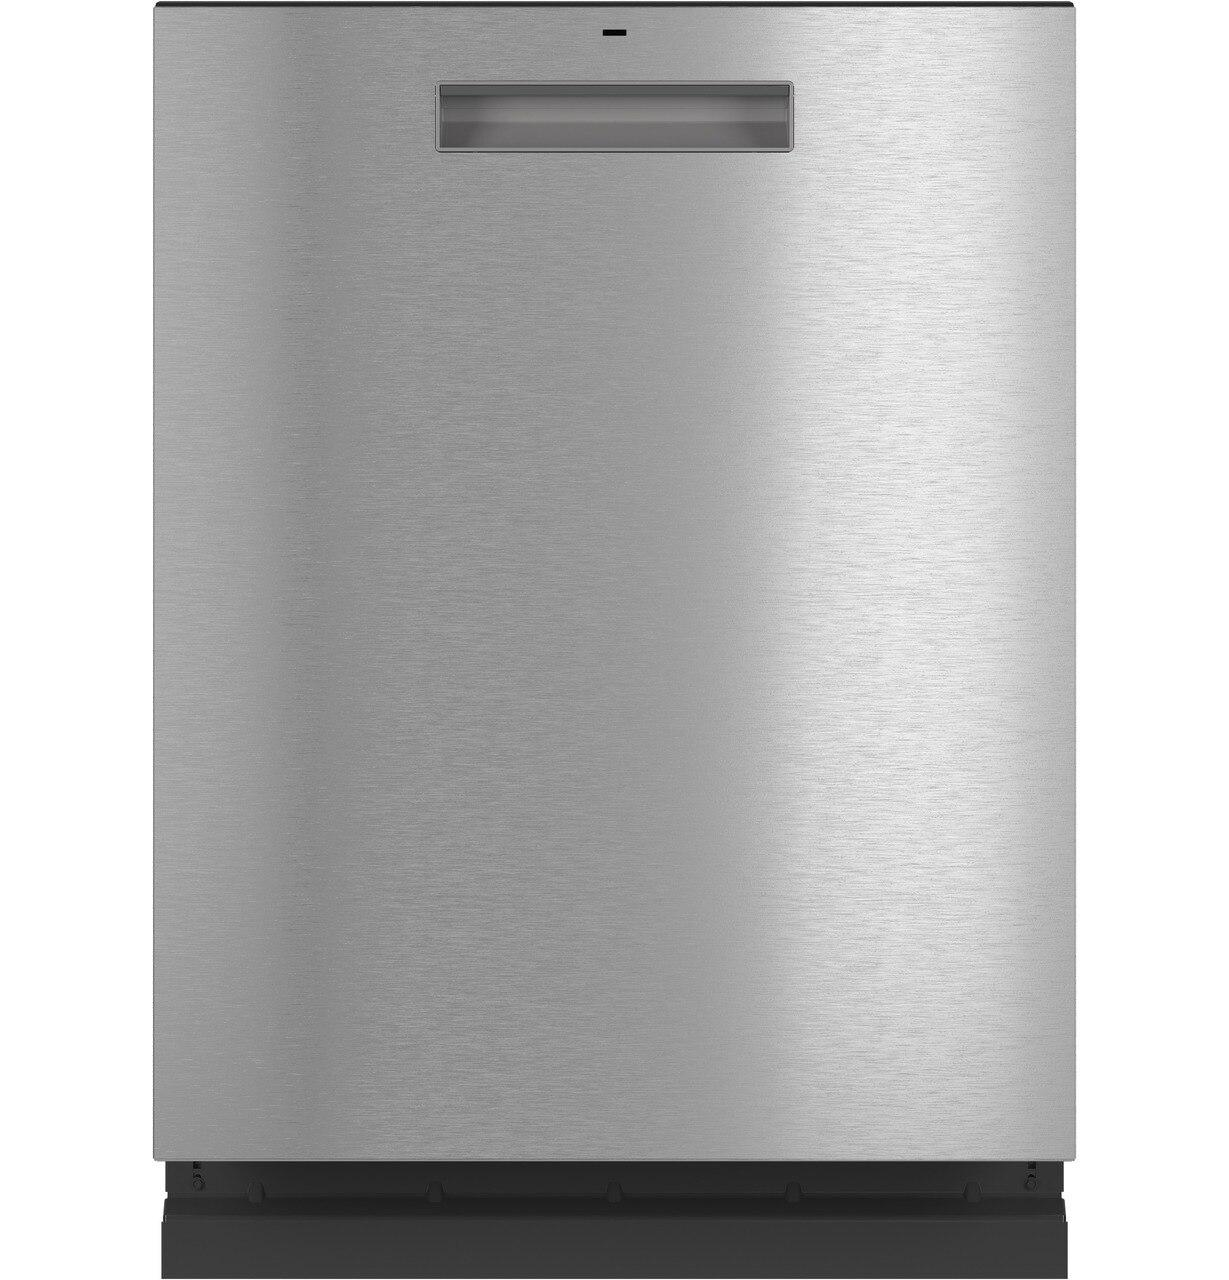 CafeCafé™ Stainless Steel Interior Dishwasher With Sanitize And Ultra Wash & Dry In Platinum Glass